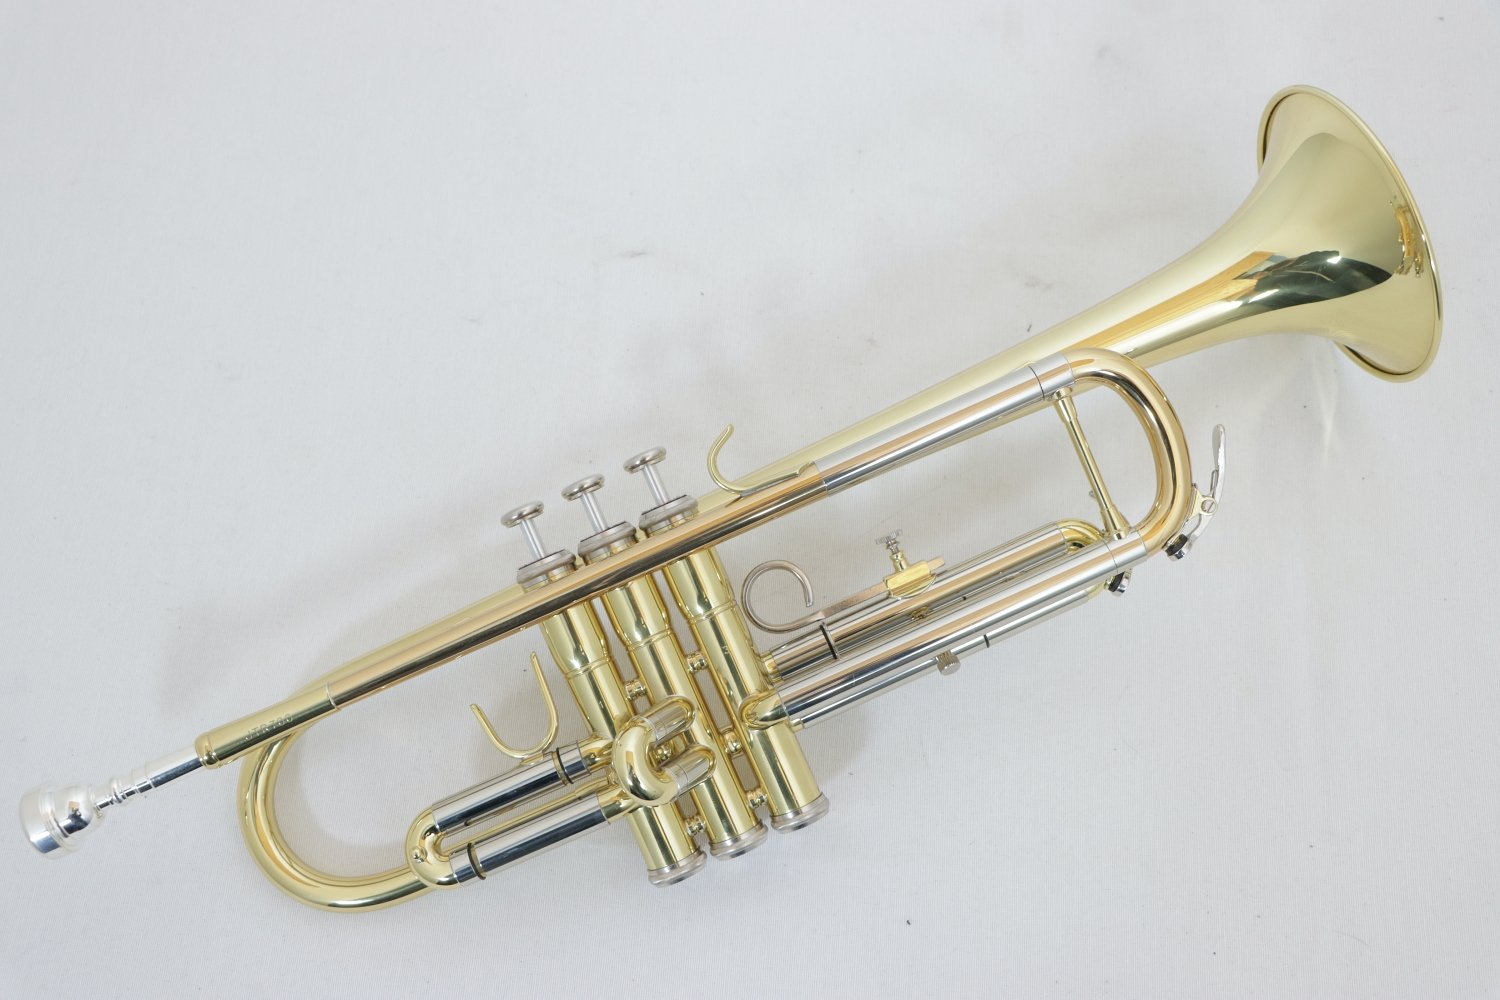 USED Jupiter Student Trumpet with Hard Case and Mouthpiece in Near Mint Condition!